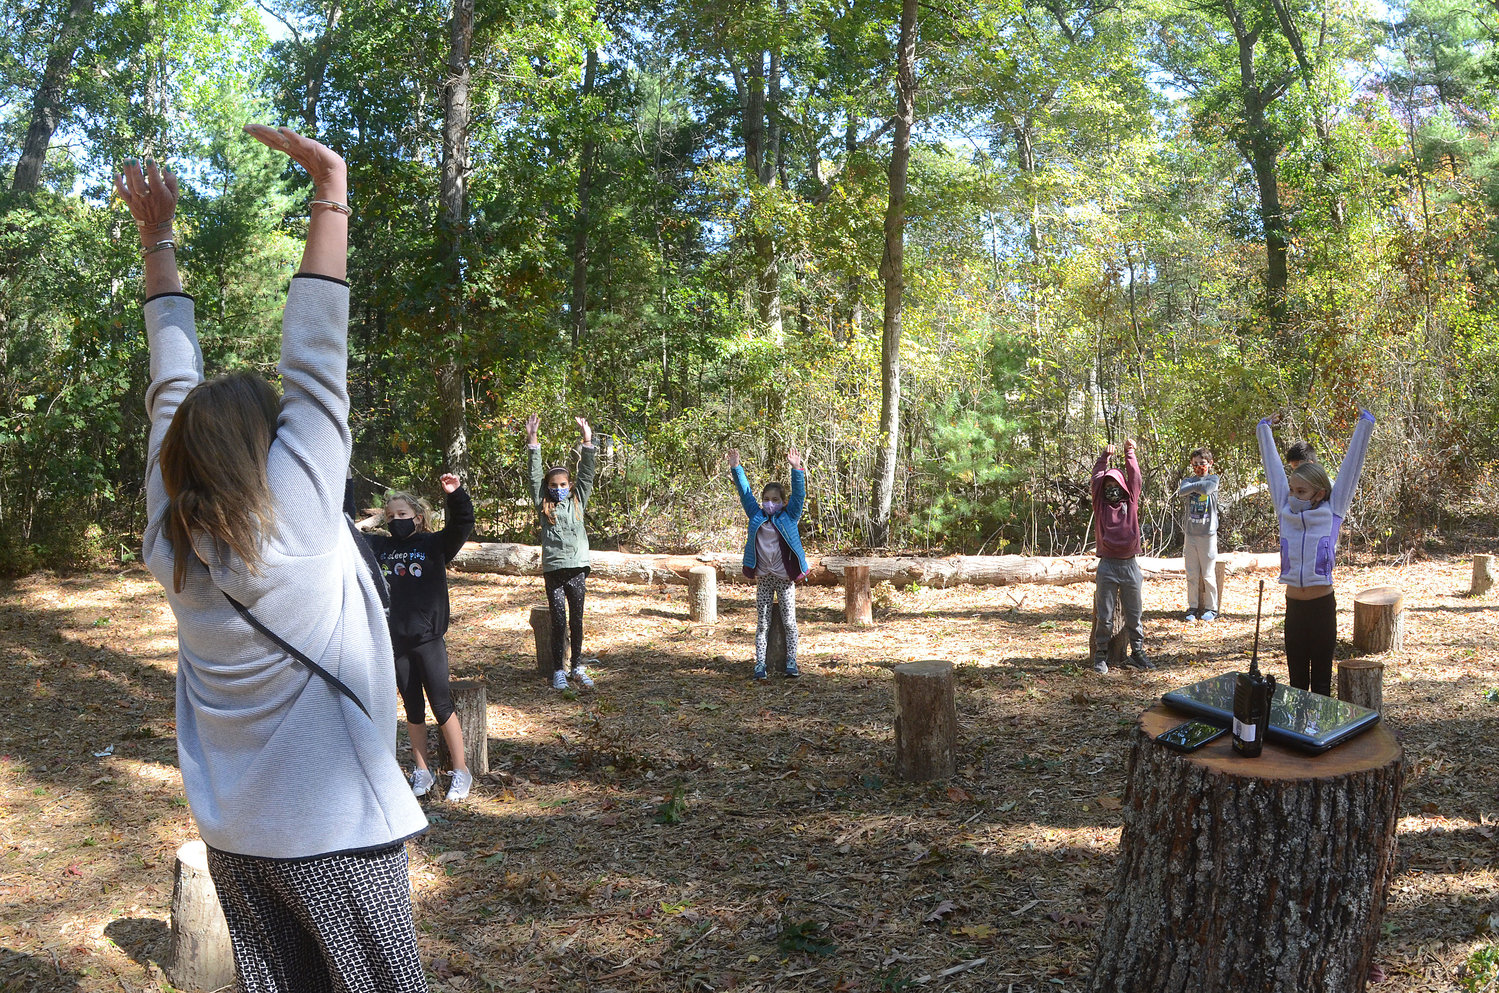 Hampden Meadows School Principal Tracey McGee leads students in yoga exercises in one of the outdoor classrooms.